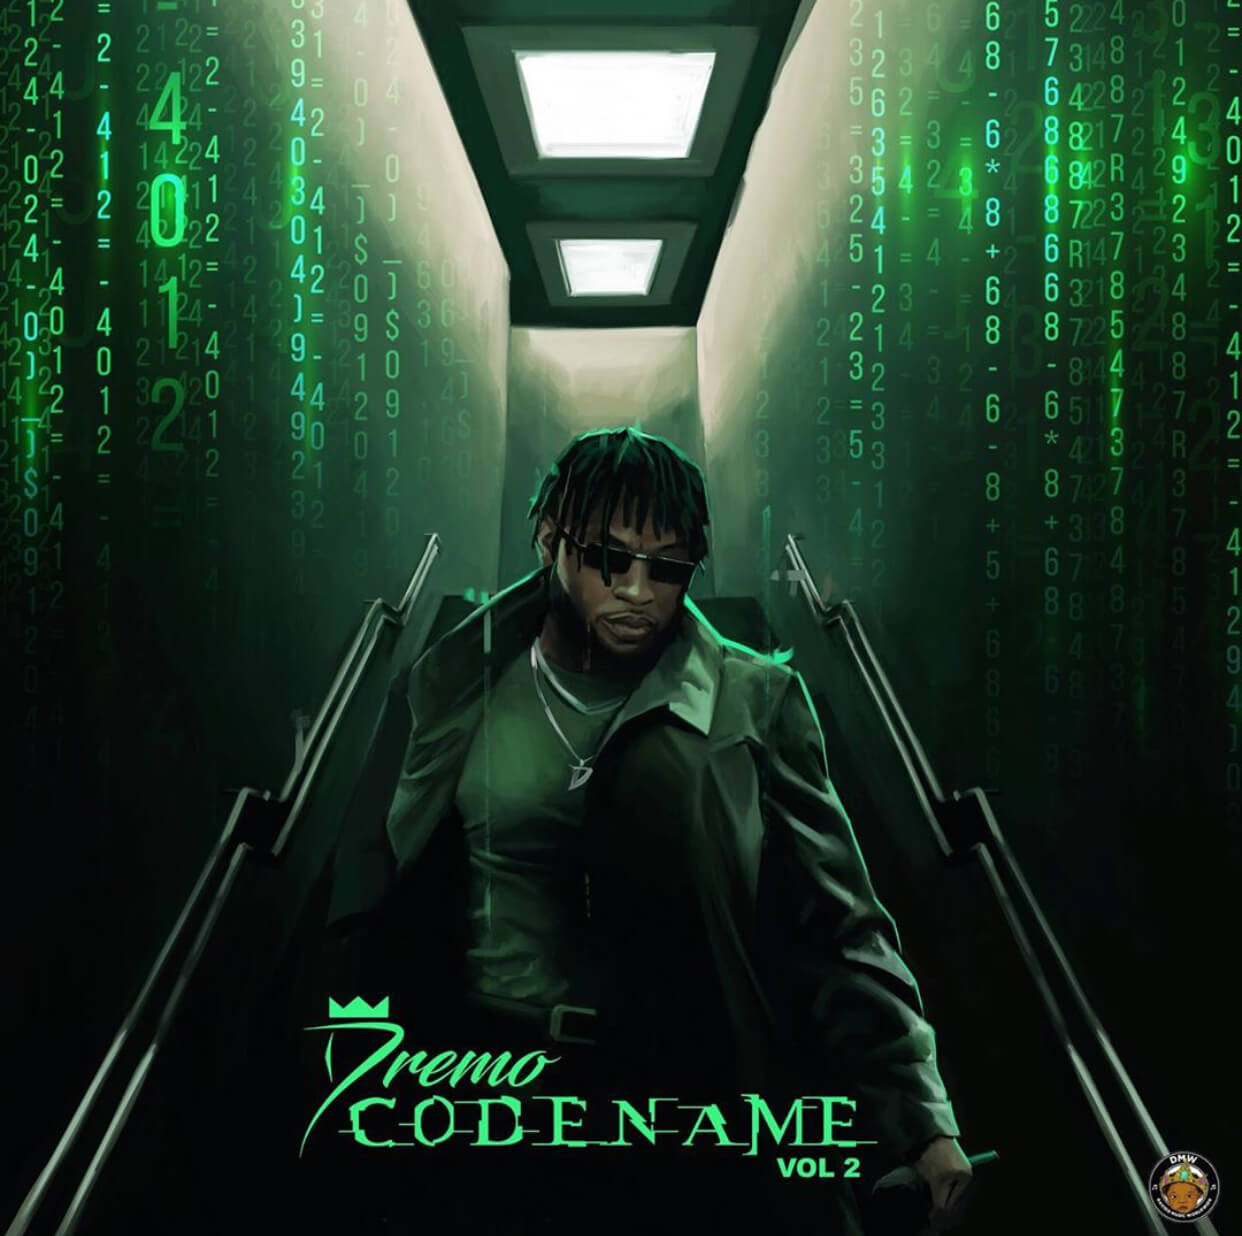 Album Review: Dremo – Codename Vol. 2